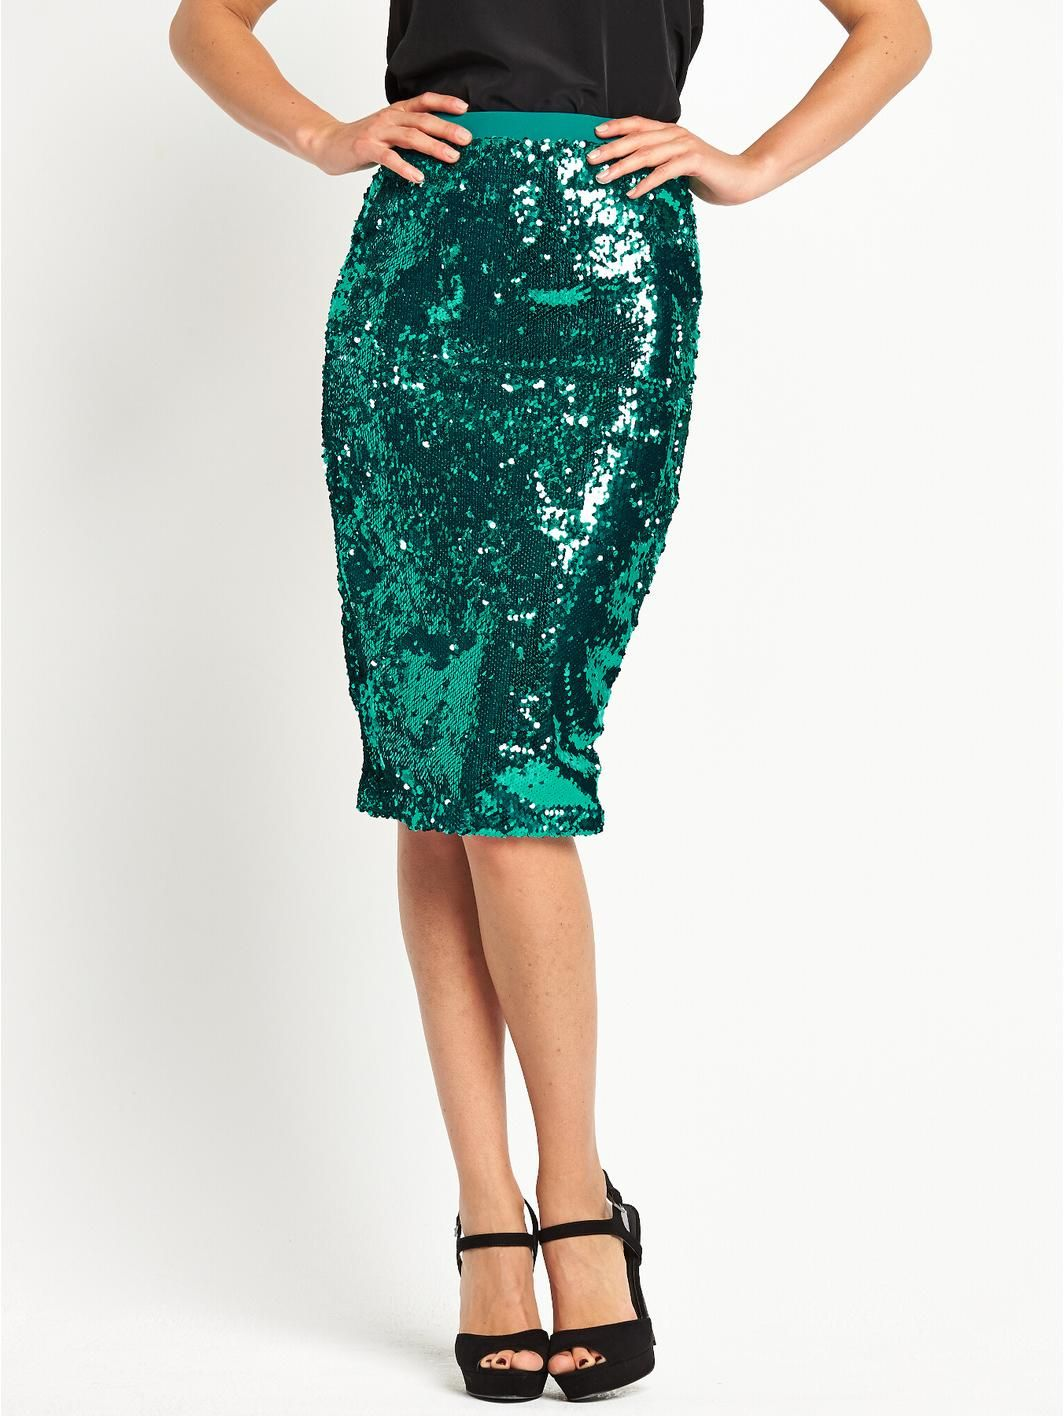 Sequin Pencil Skirt, http://www.isme.com/definitions-sequin-pencil ...